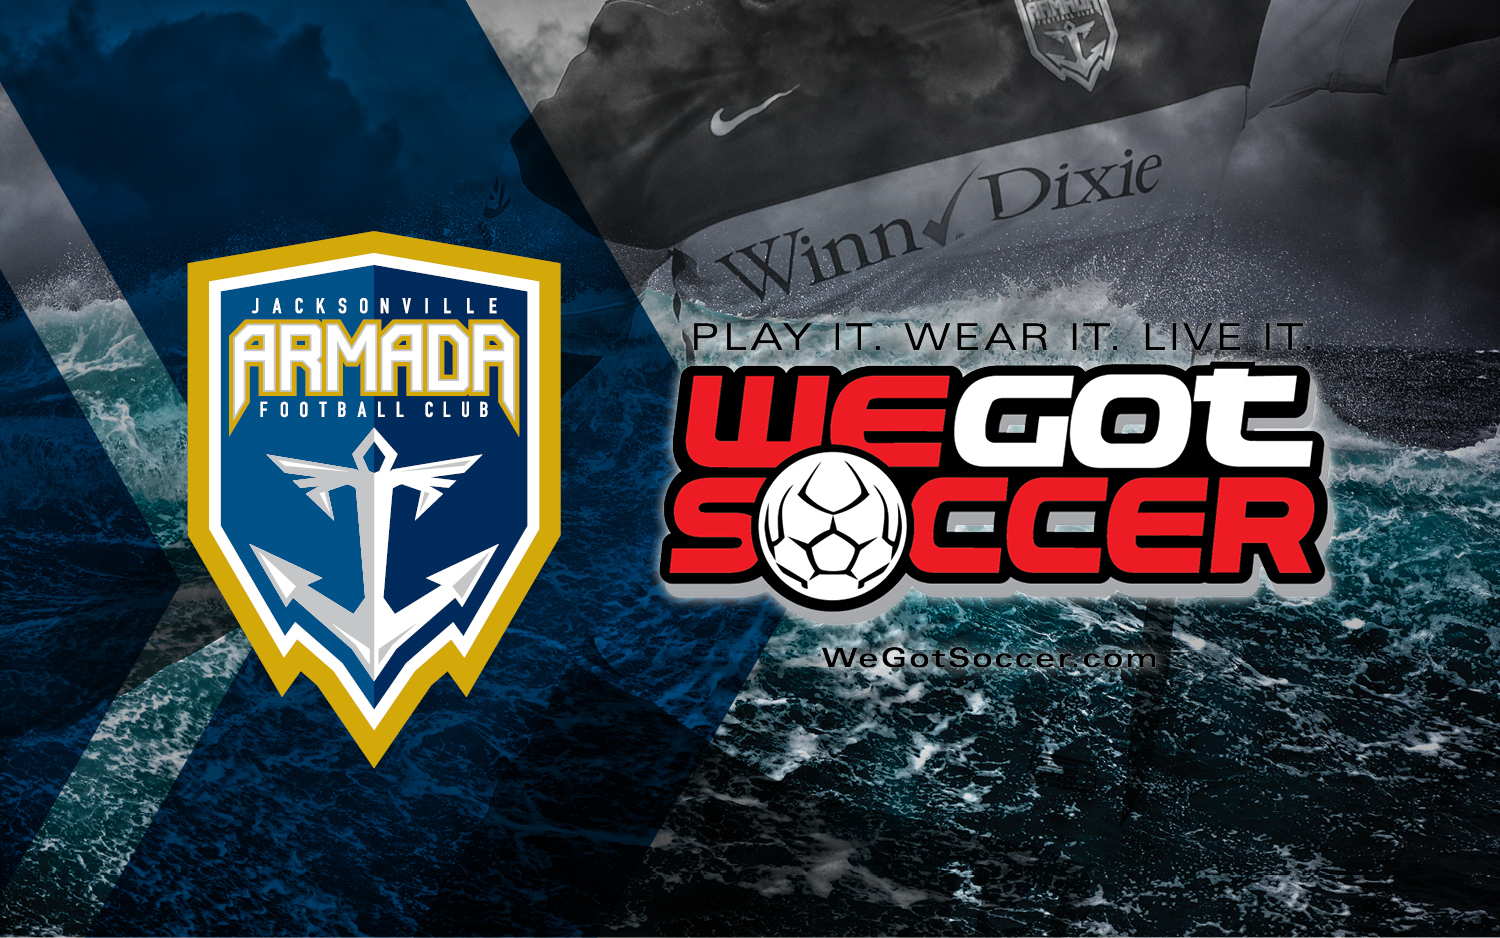 d7b1ae472 WeGotSoccer to Open New Retail Store in Jacksonville With Exclusive Armada  FC Pro Shop